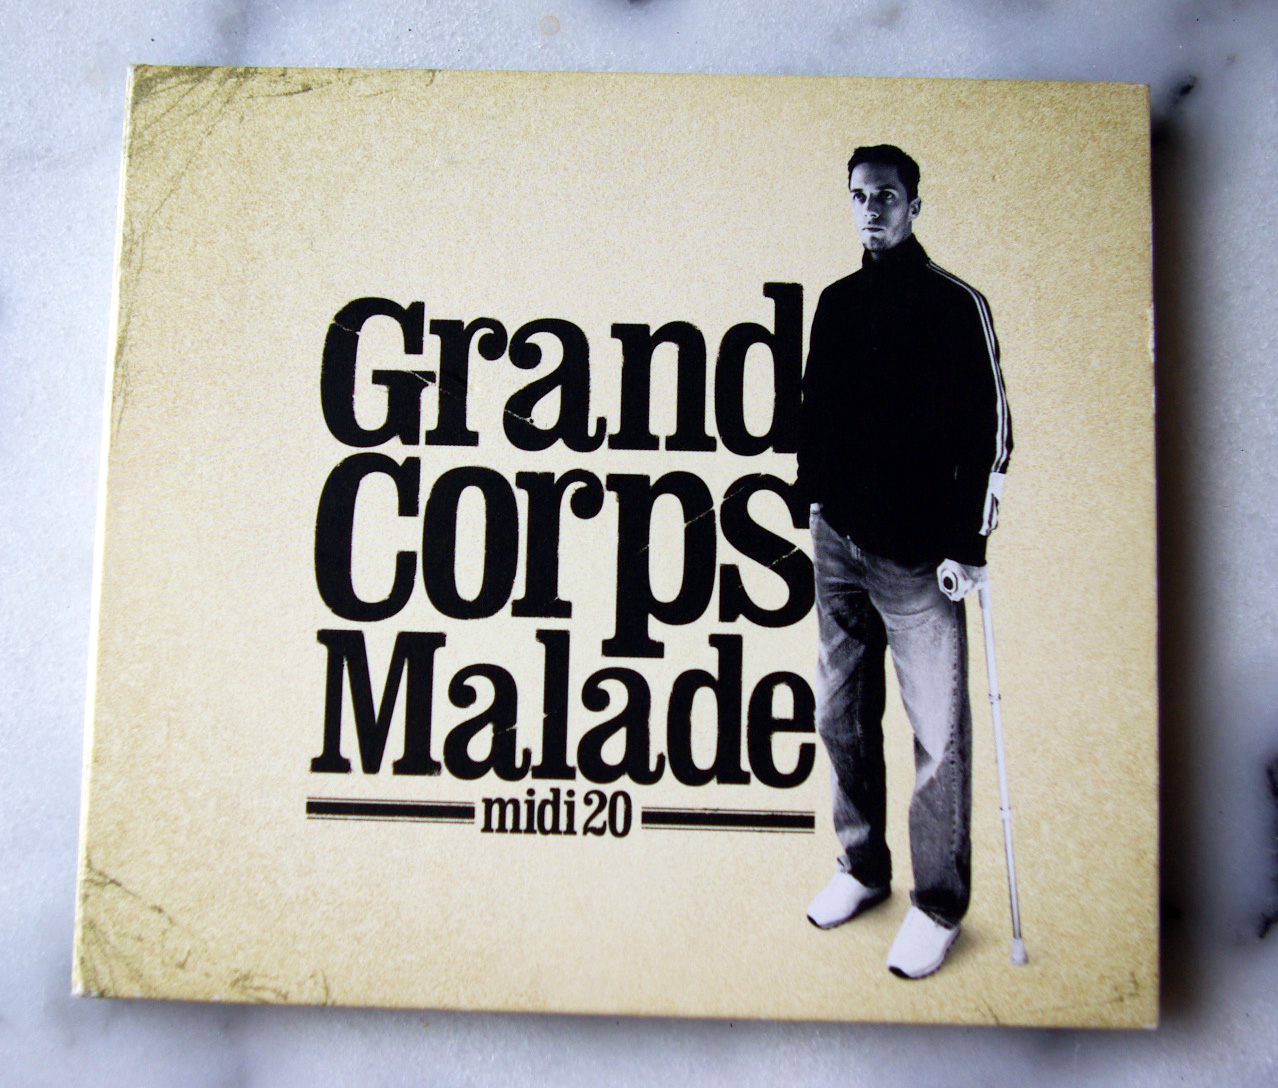 Telecharger grand corps malade rencontre mp3